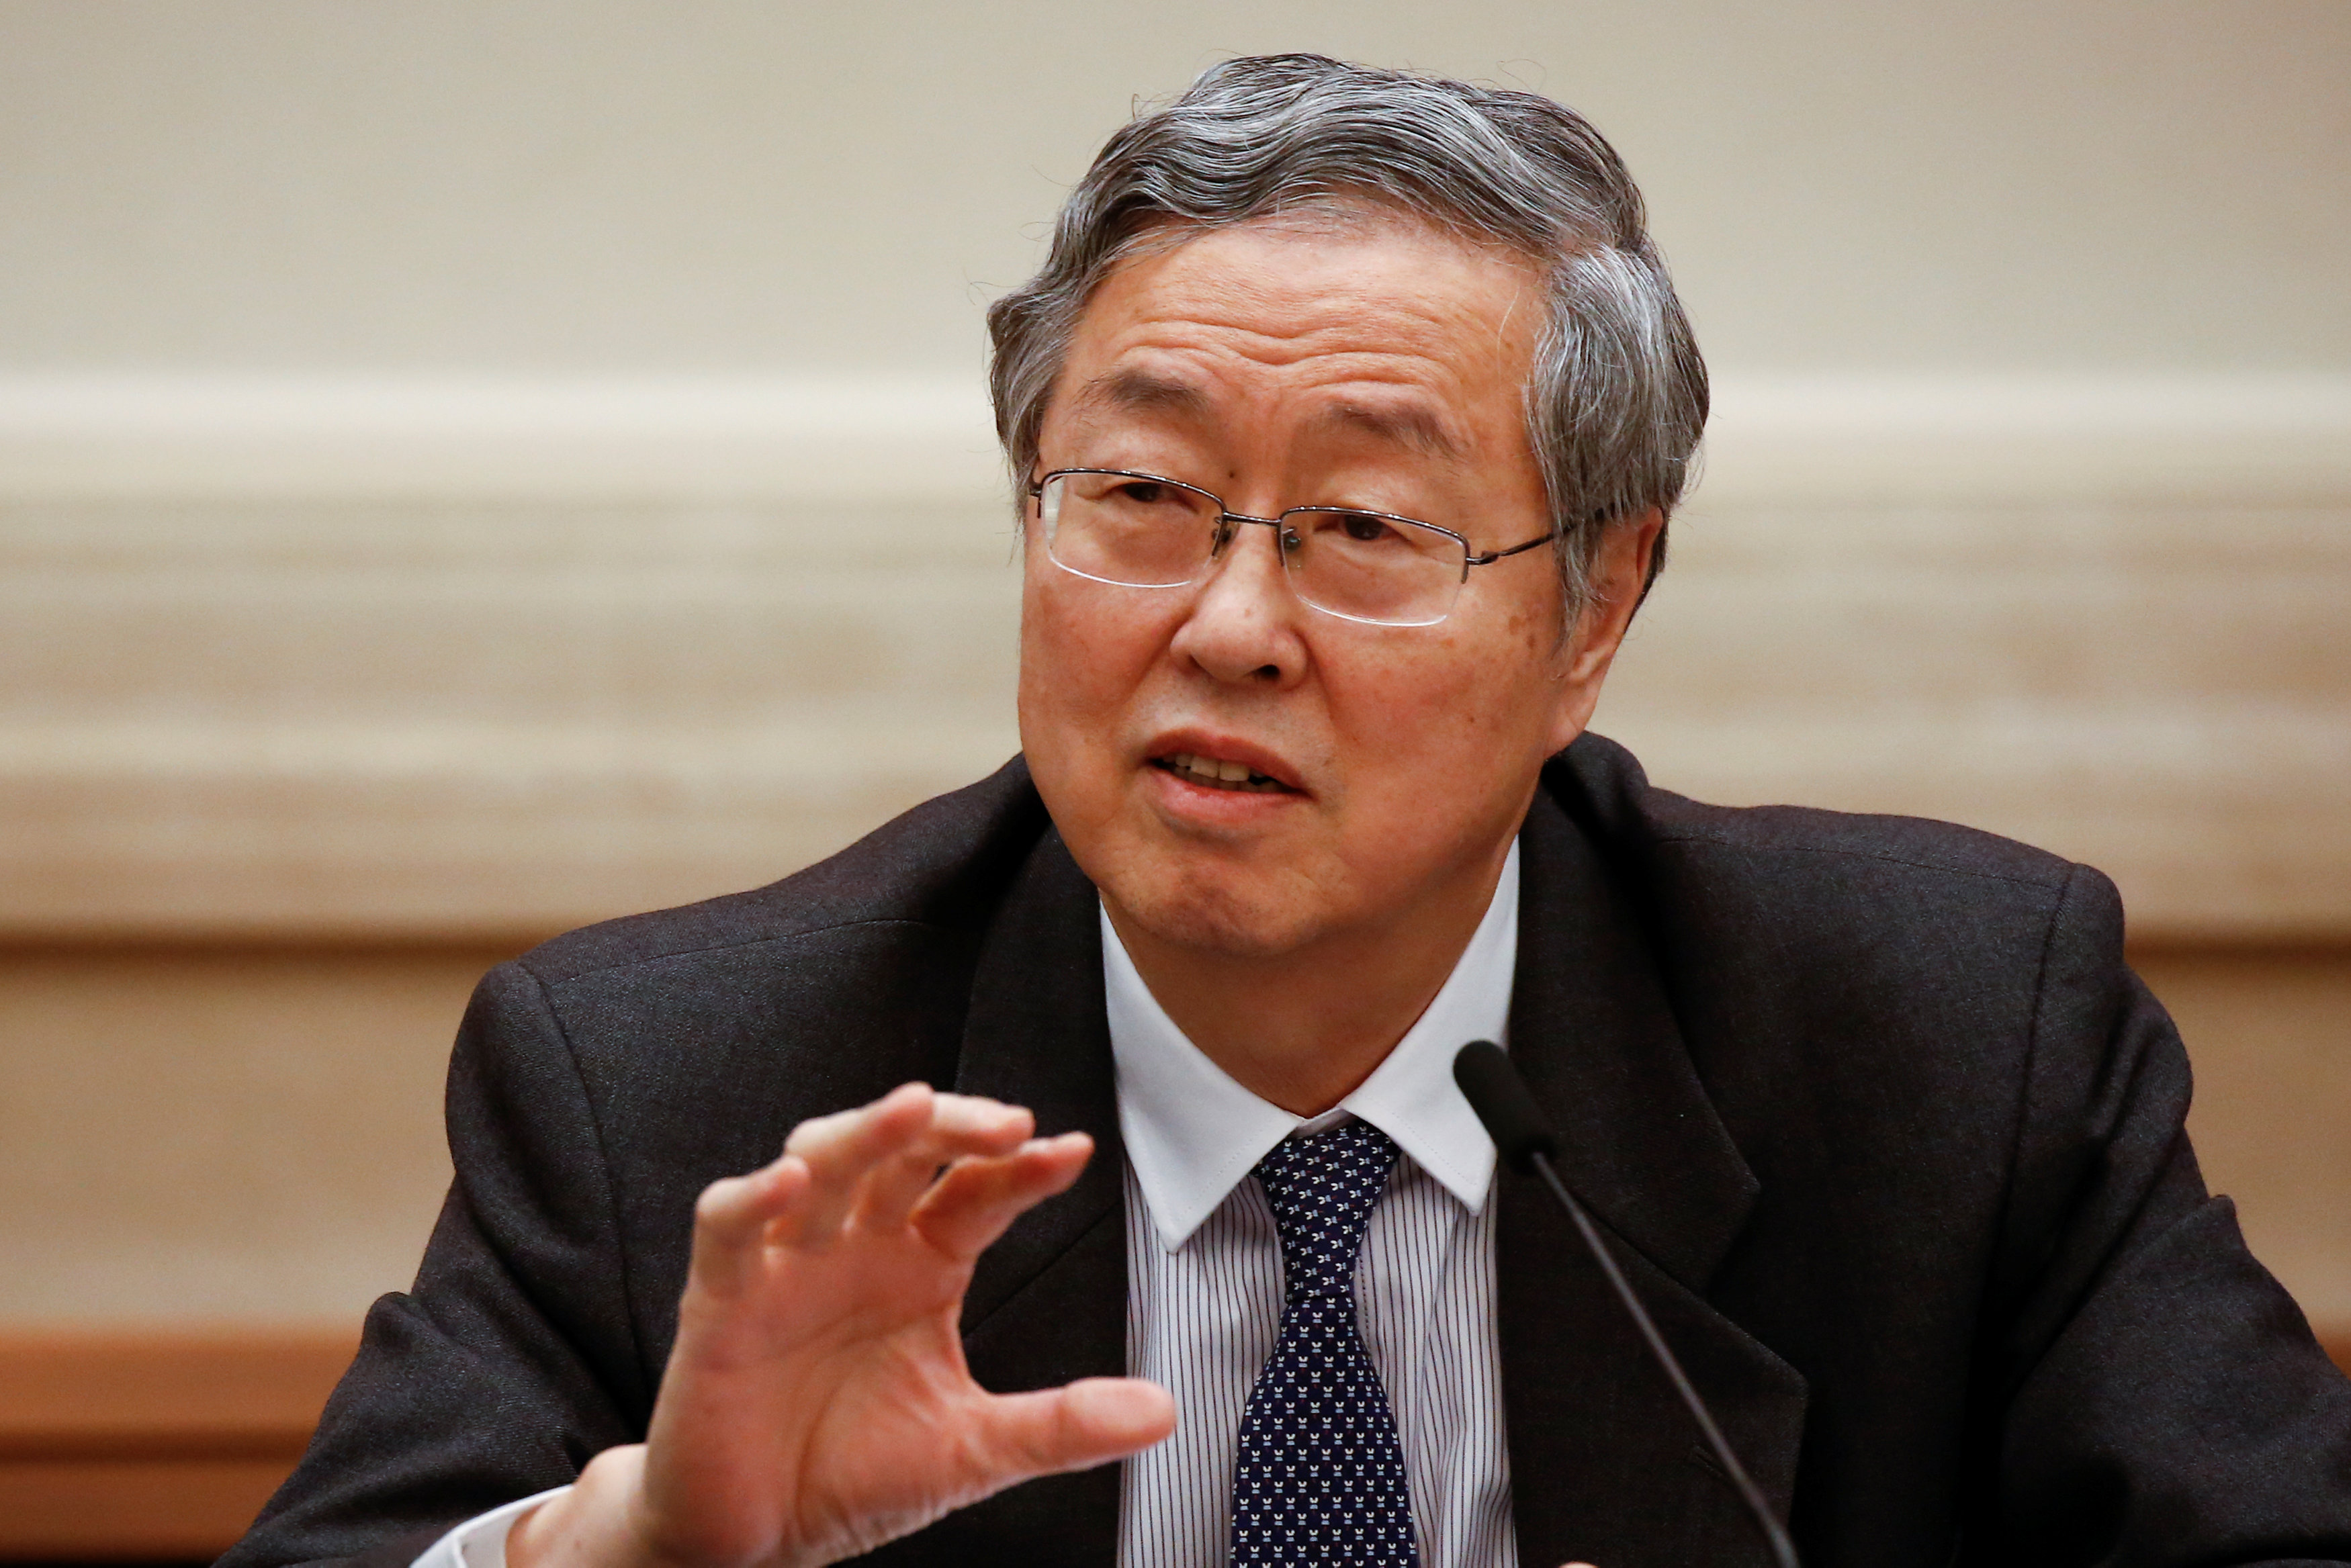 People's Bank of China Governor Zhou Xiaochuan says the credit risk of financial institutions has undermined confidence at home and abroad in China's financial system. Photo: Visual China